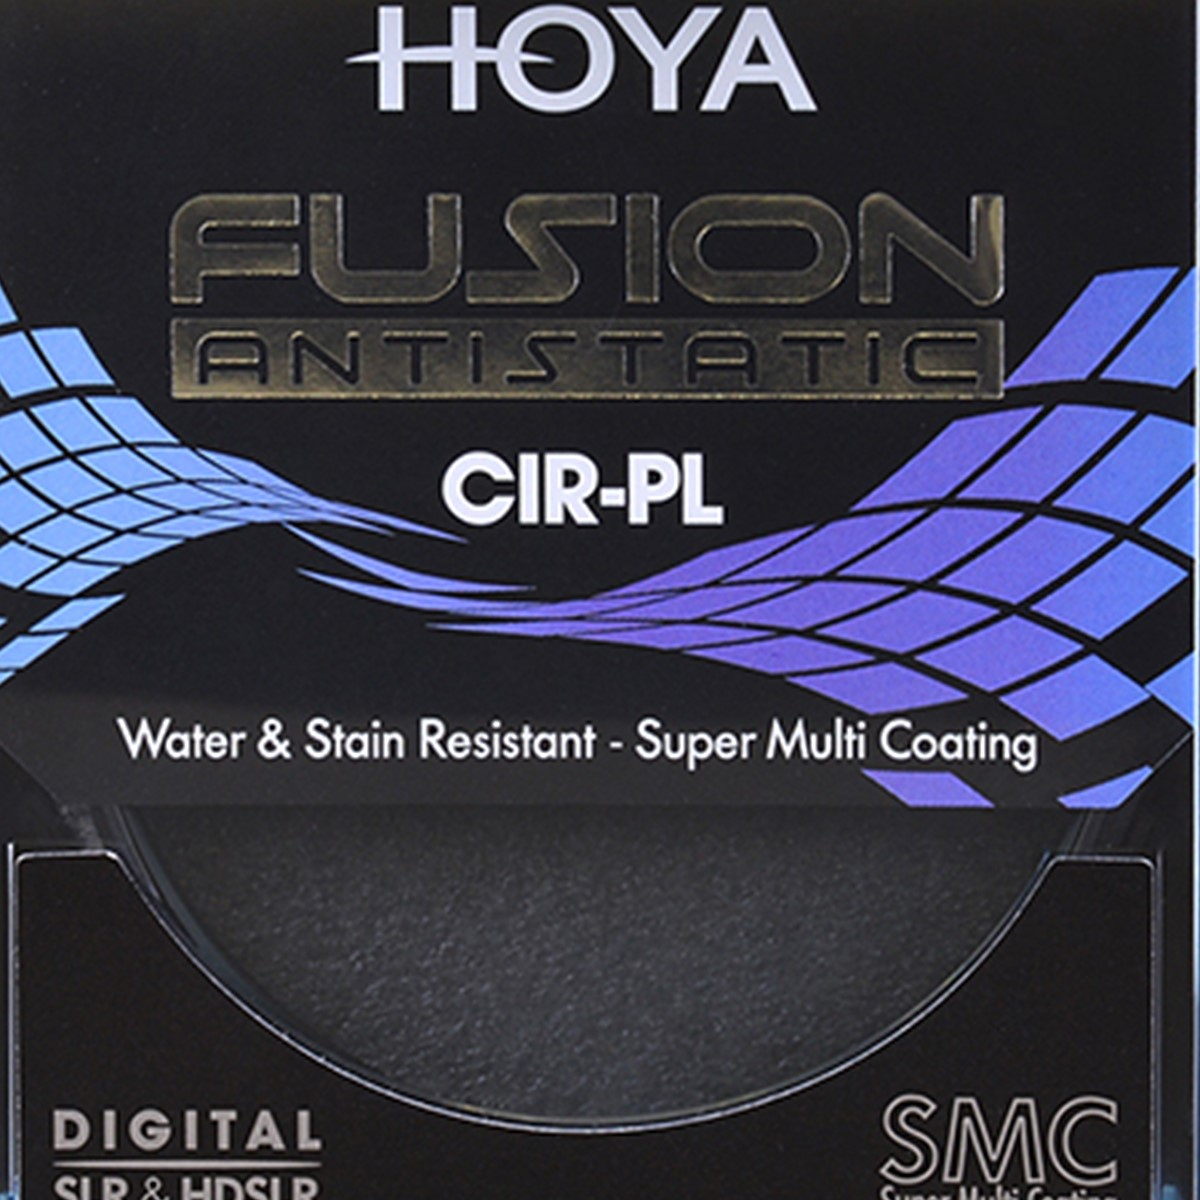 Hoya Uses Antistatic Coating To Repel Dust And Water For New Fusion Uv Pro 1 Digital Filter 58mm Series Photography Review